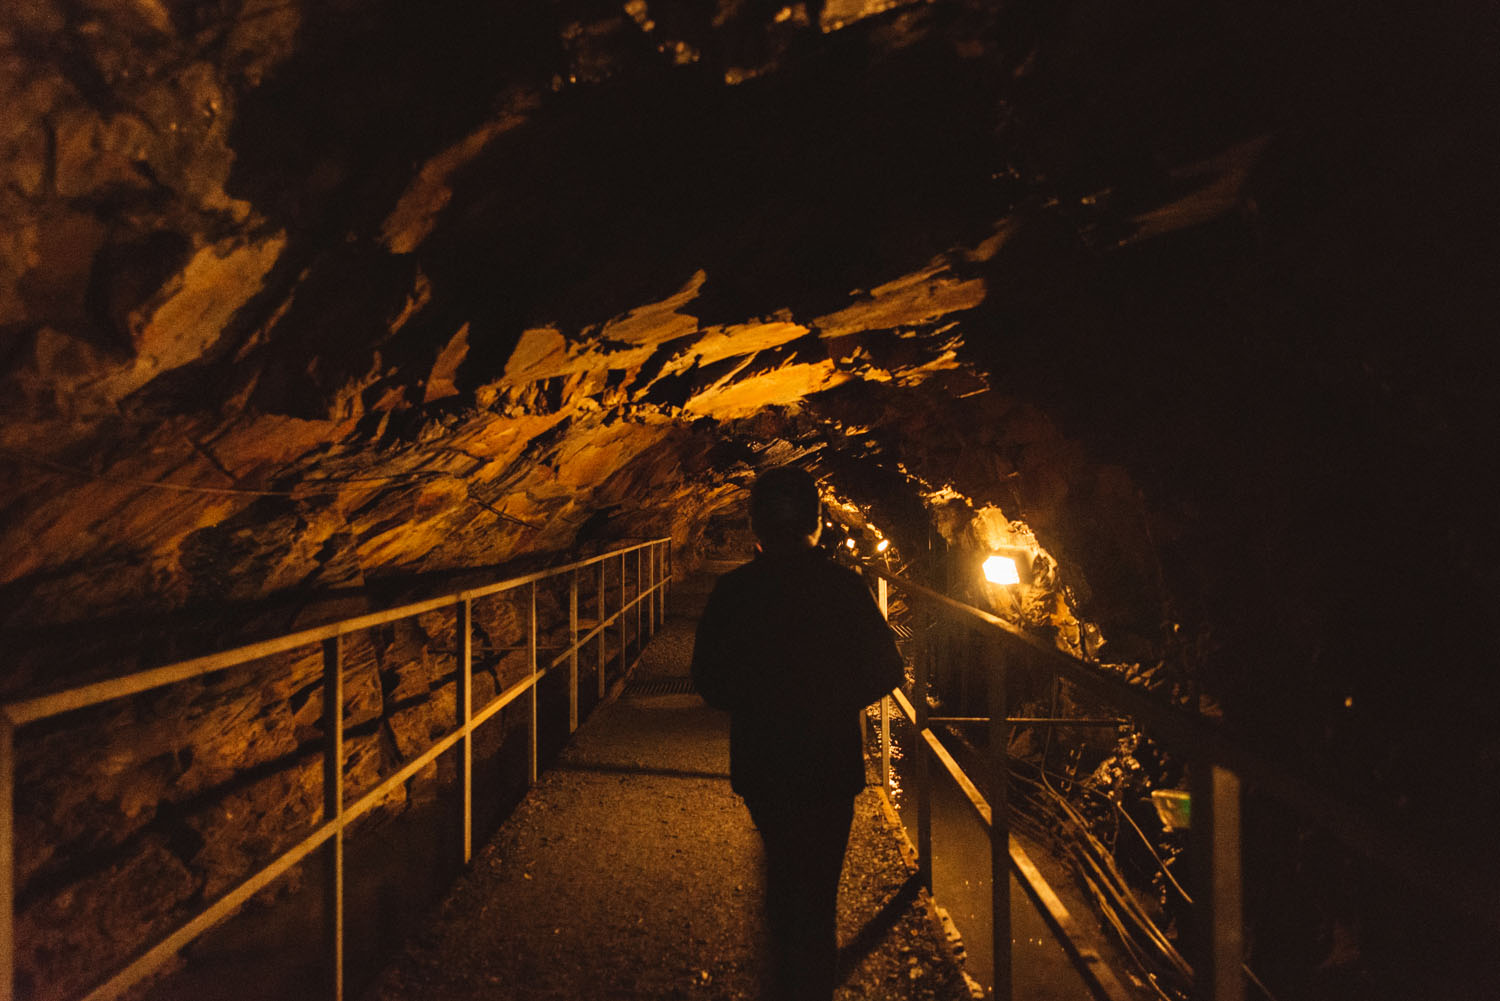 Walking through mine tunnel - Llechwedd Slate Caverns in Blaenau Ffestiniog, North Wales